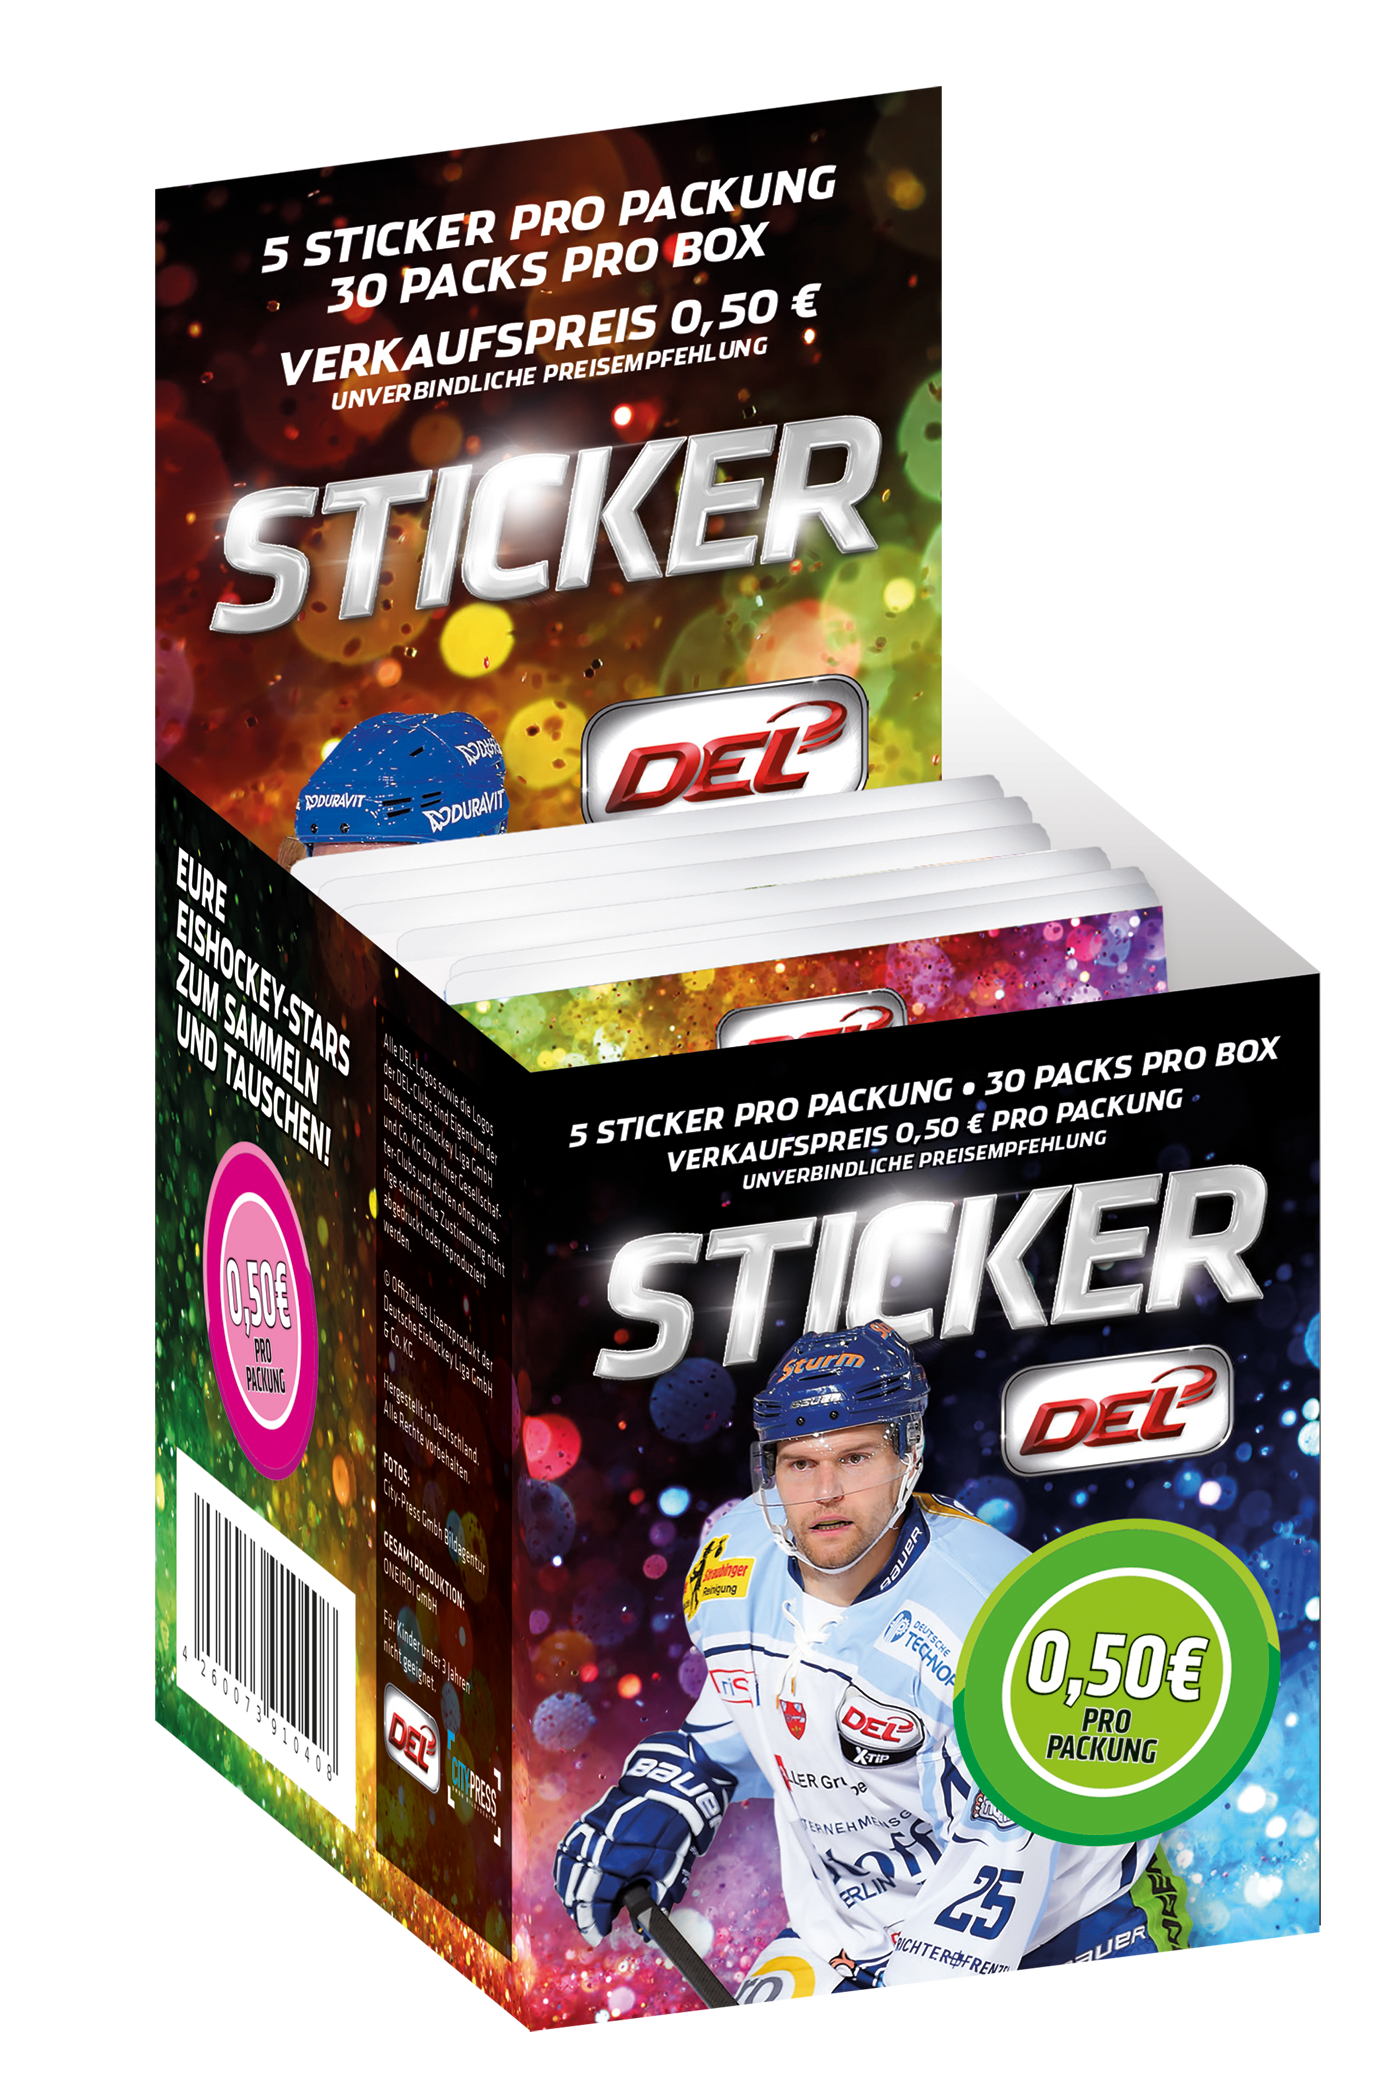 DEL Sticker Box 2015/2016